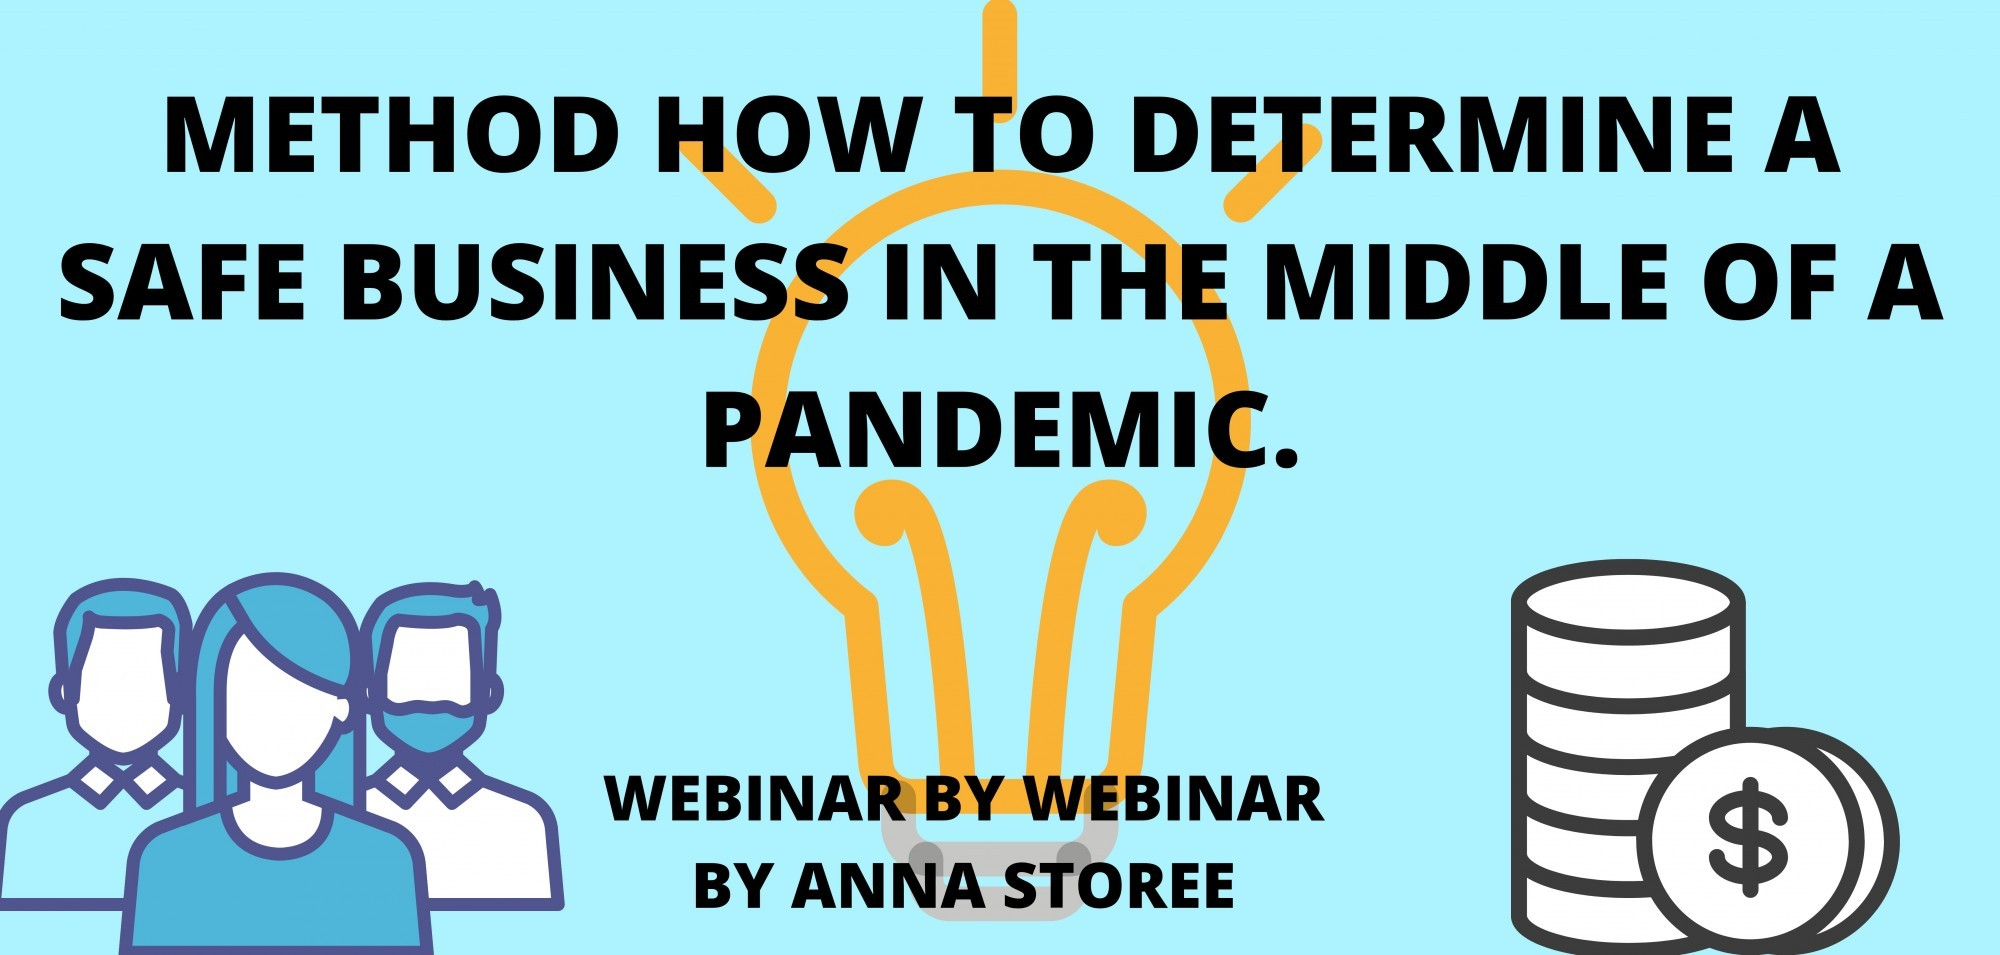 METHOD HOW TO DETERMINE A SAFE BUSINESS IN THE MIDDLE OF A PANDEMIC.